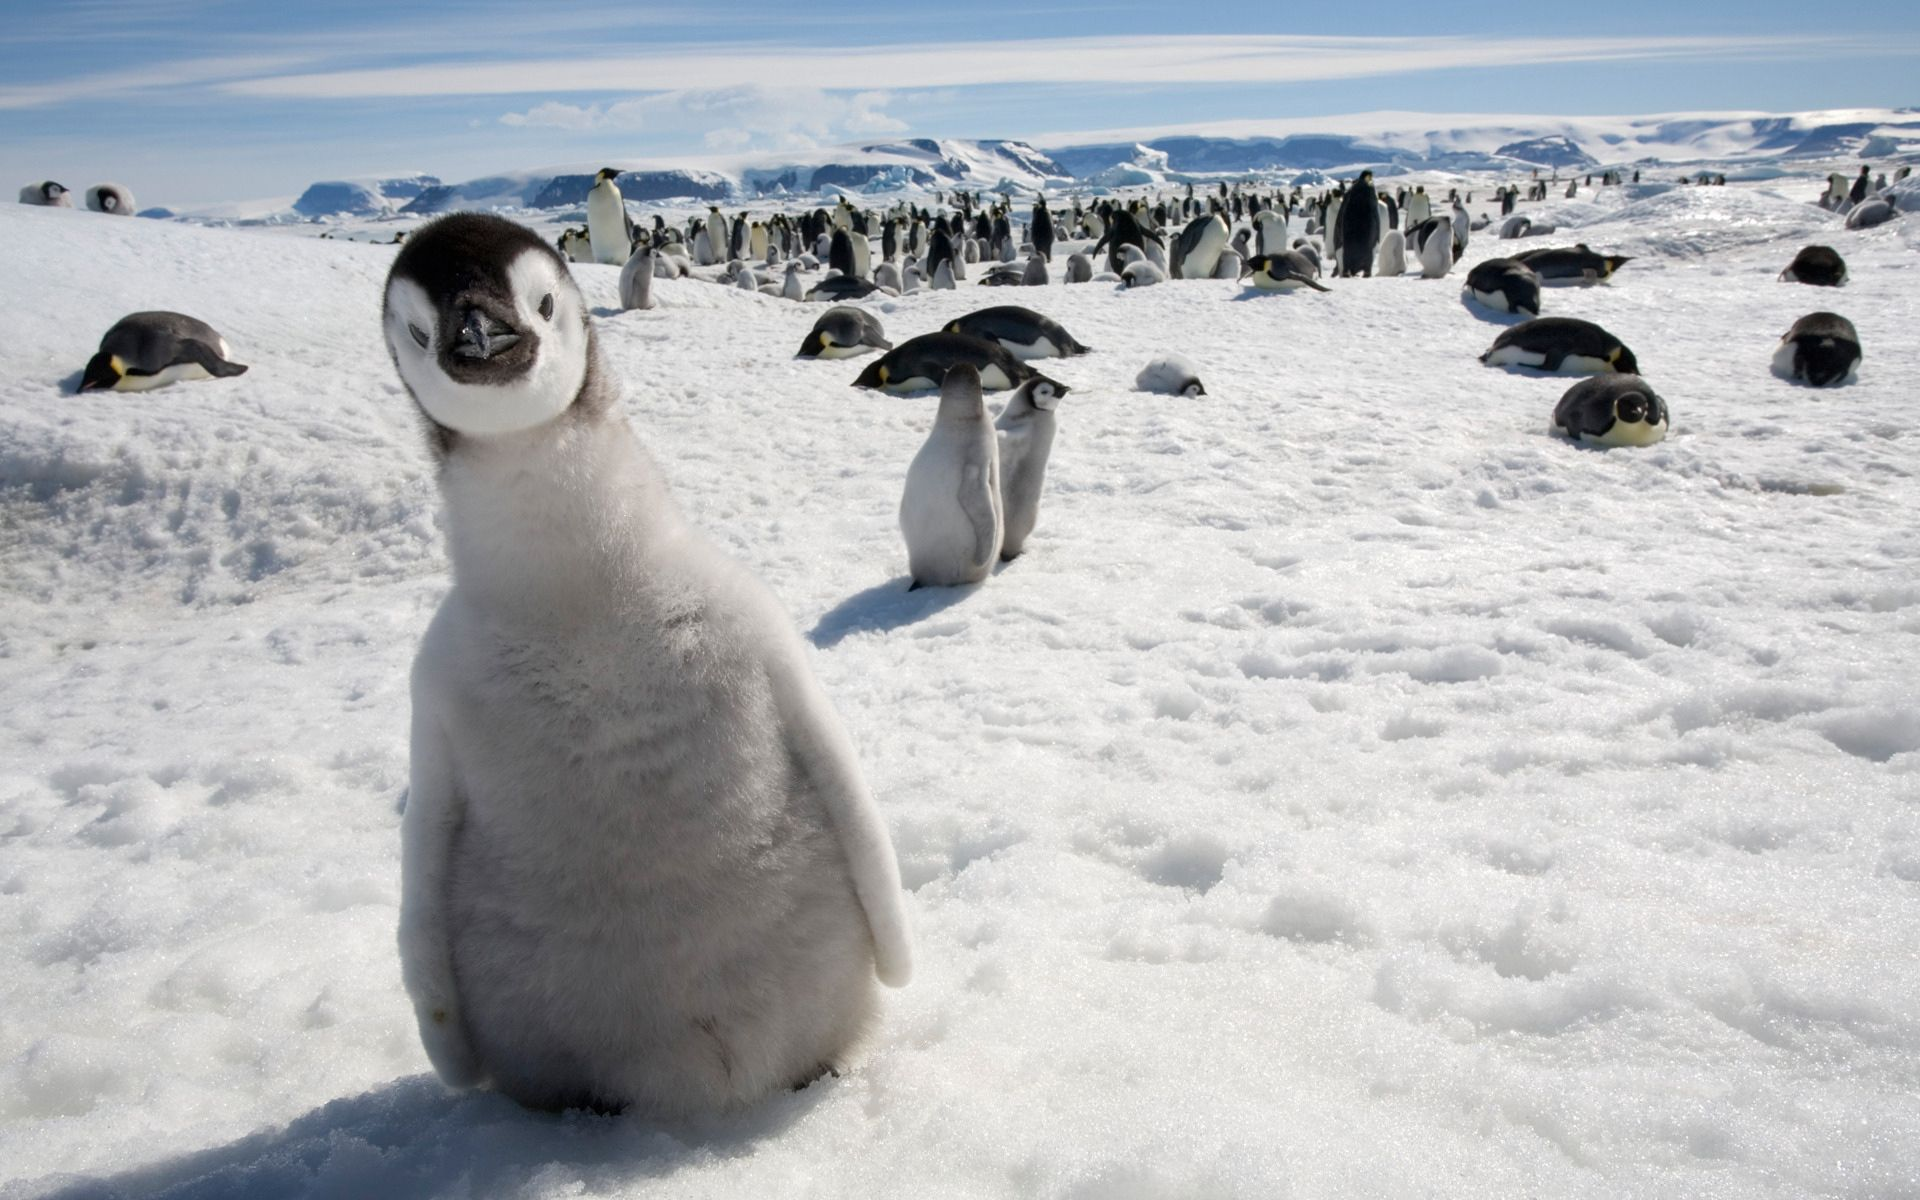 151966 download wallpaper Animals, Birds, Pinguins, Snow, Cold, Lots Of, Multitude screensavers and pictures for free